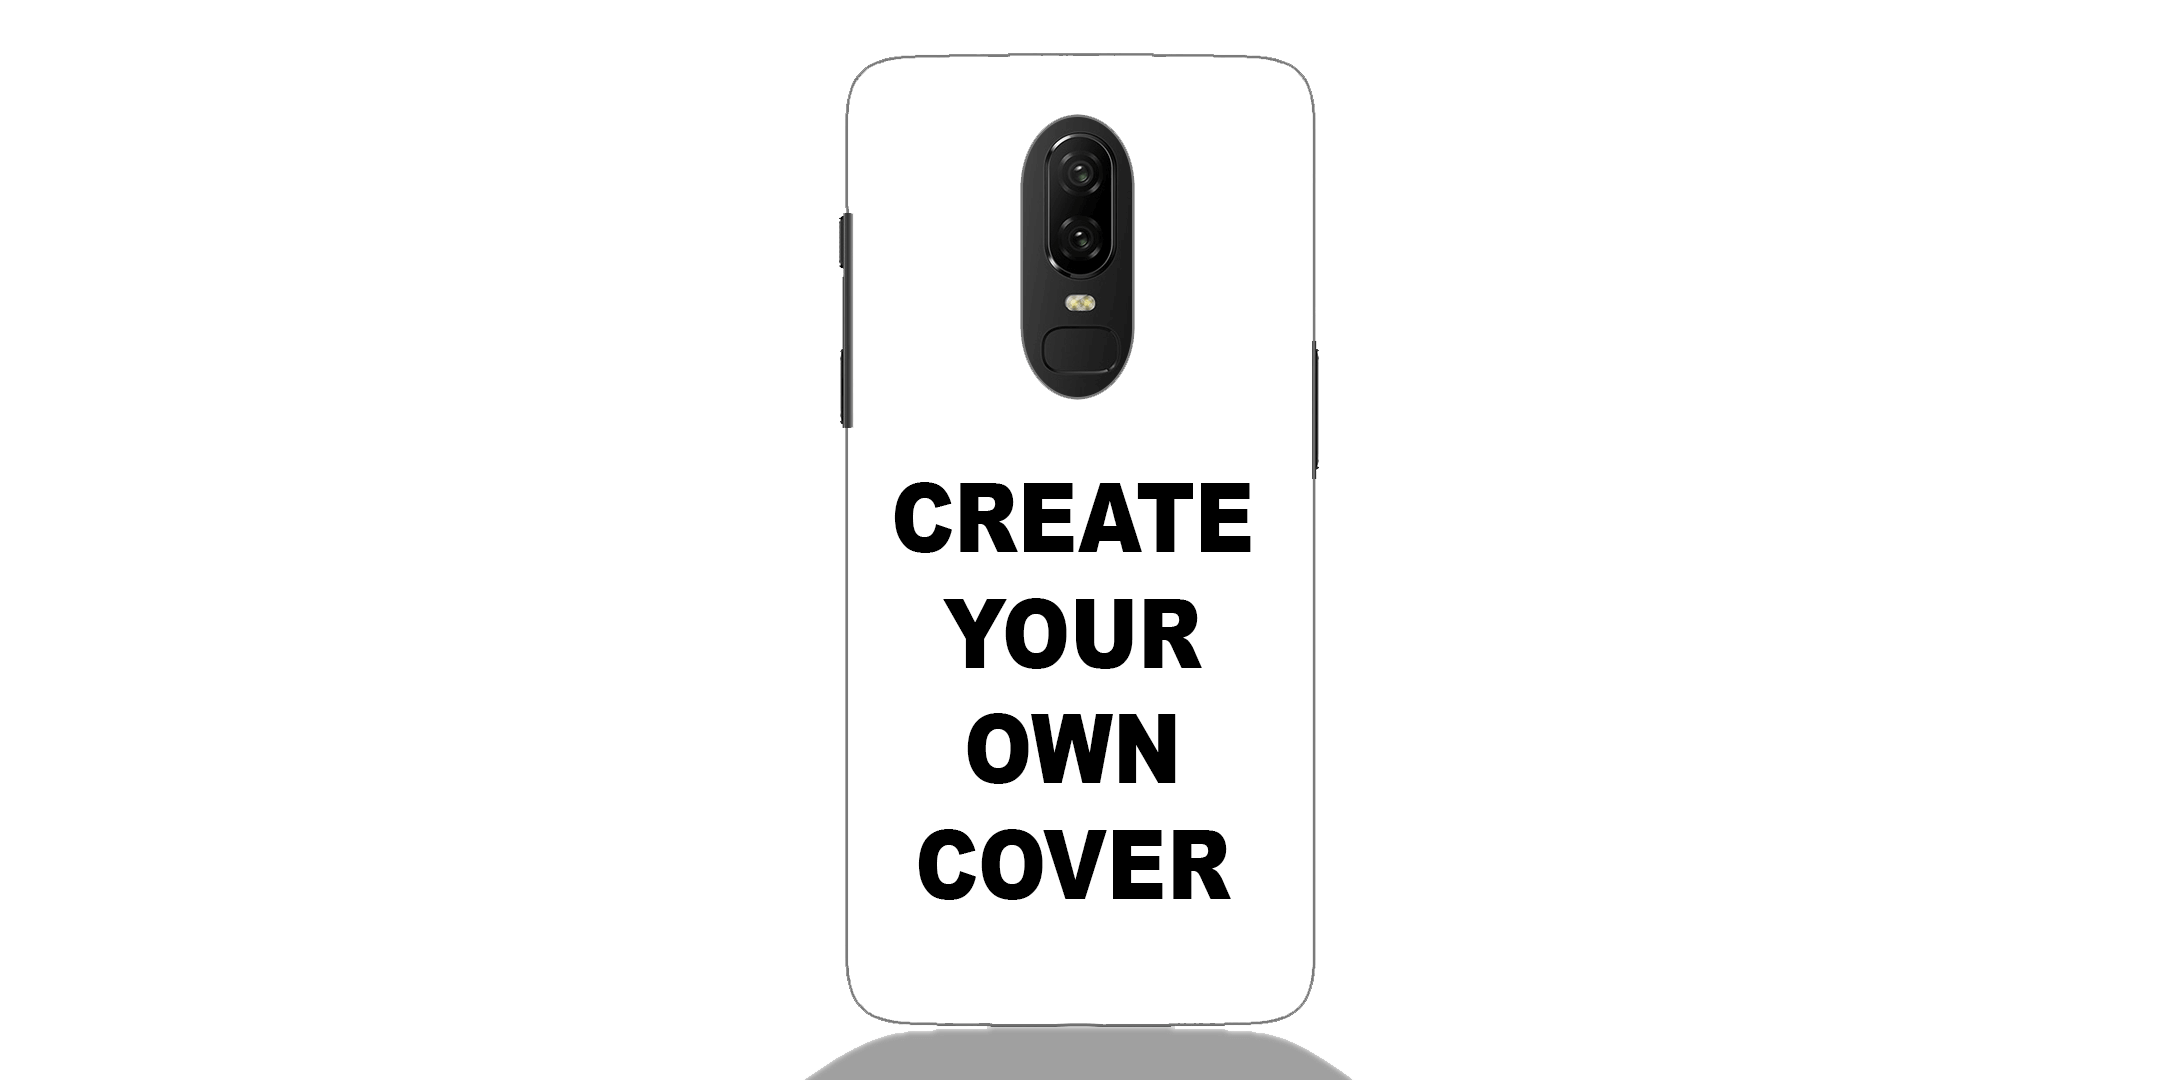 Customized One Plus 6 Back Cover